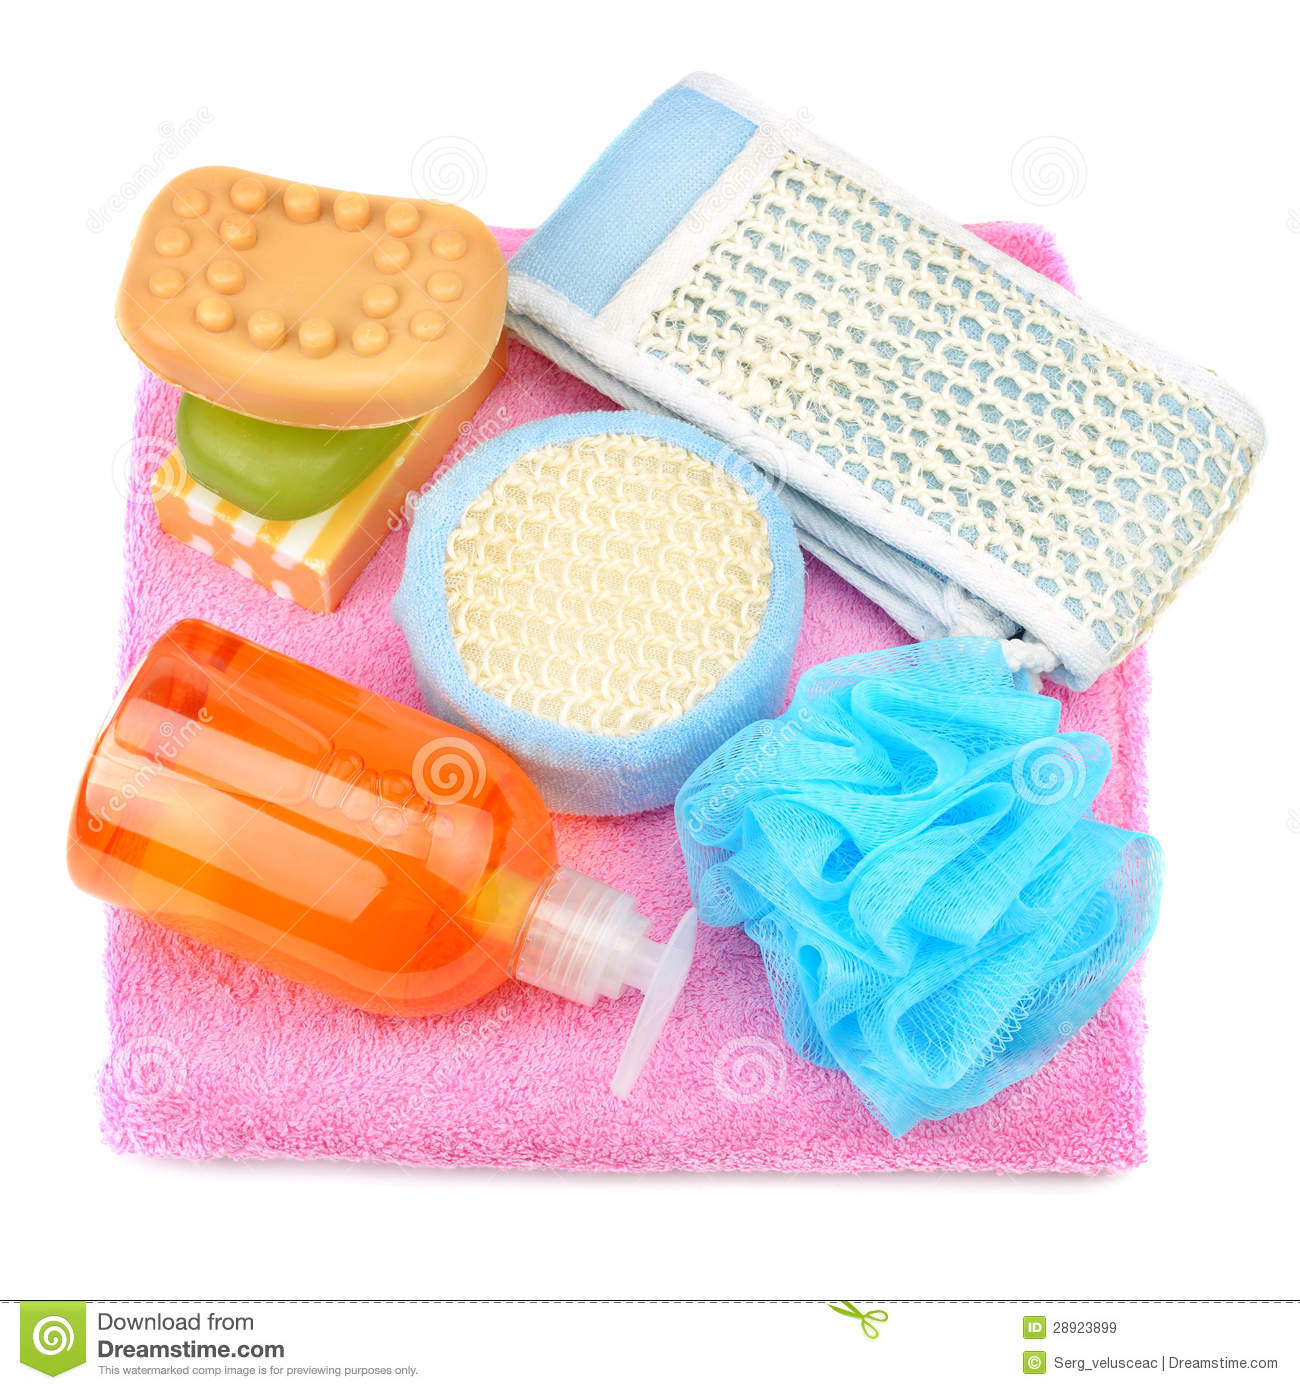 Shampoo And Soap Clipart Towel Soap Shampoo Sponge